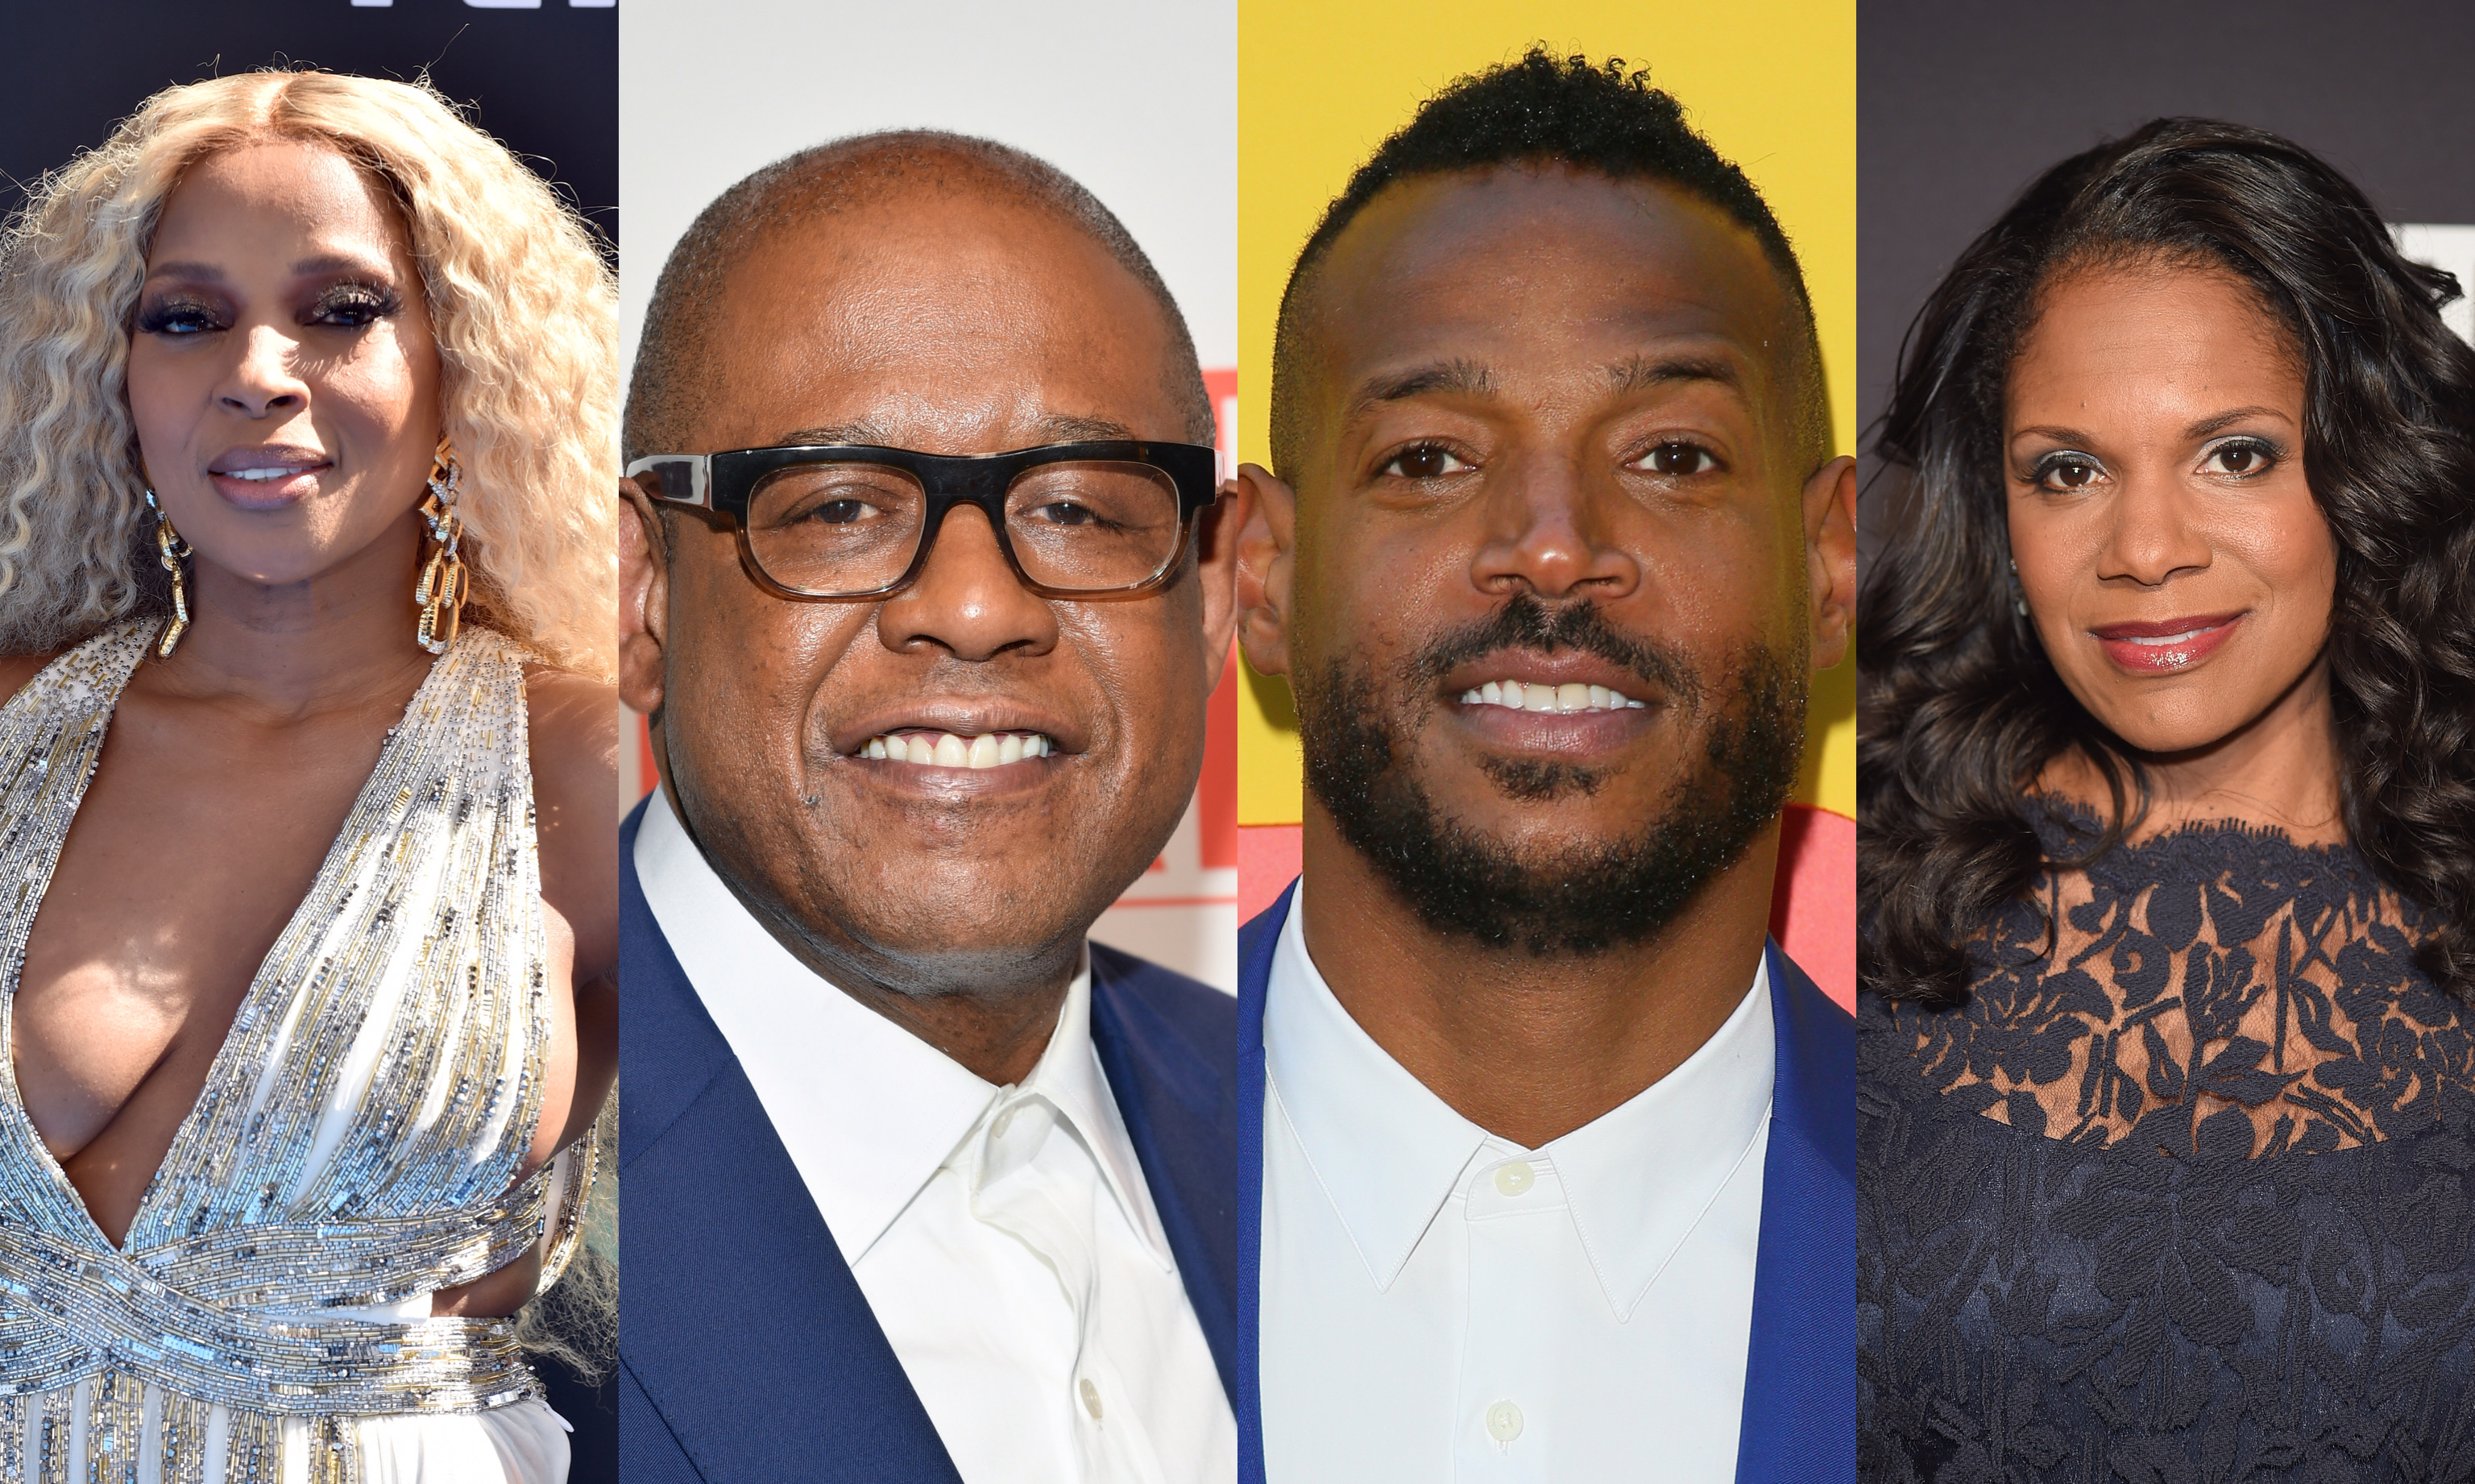 Mary J. Blige, Forest Whitaker, Marlon Wayans and Audra McDonald are among the cast members for the Aretha Franklin biopic starring Jennifer Hudson.